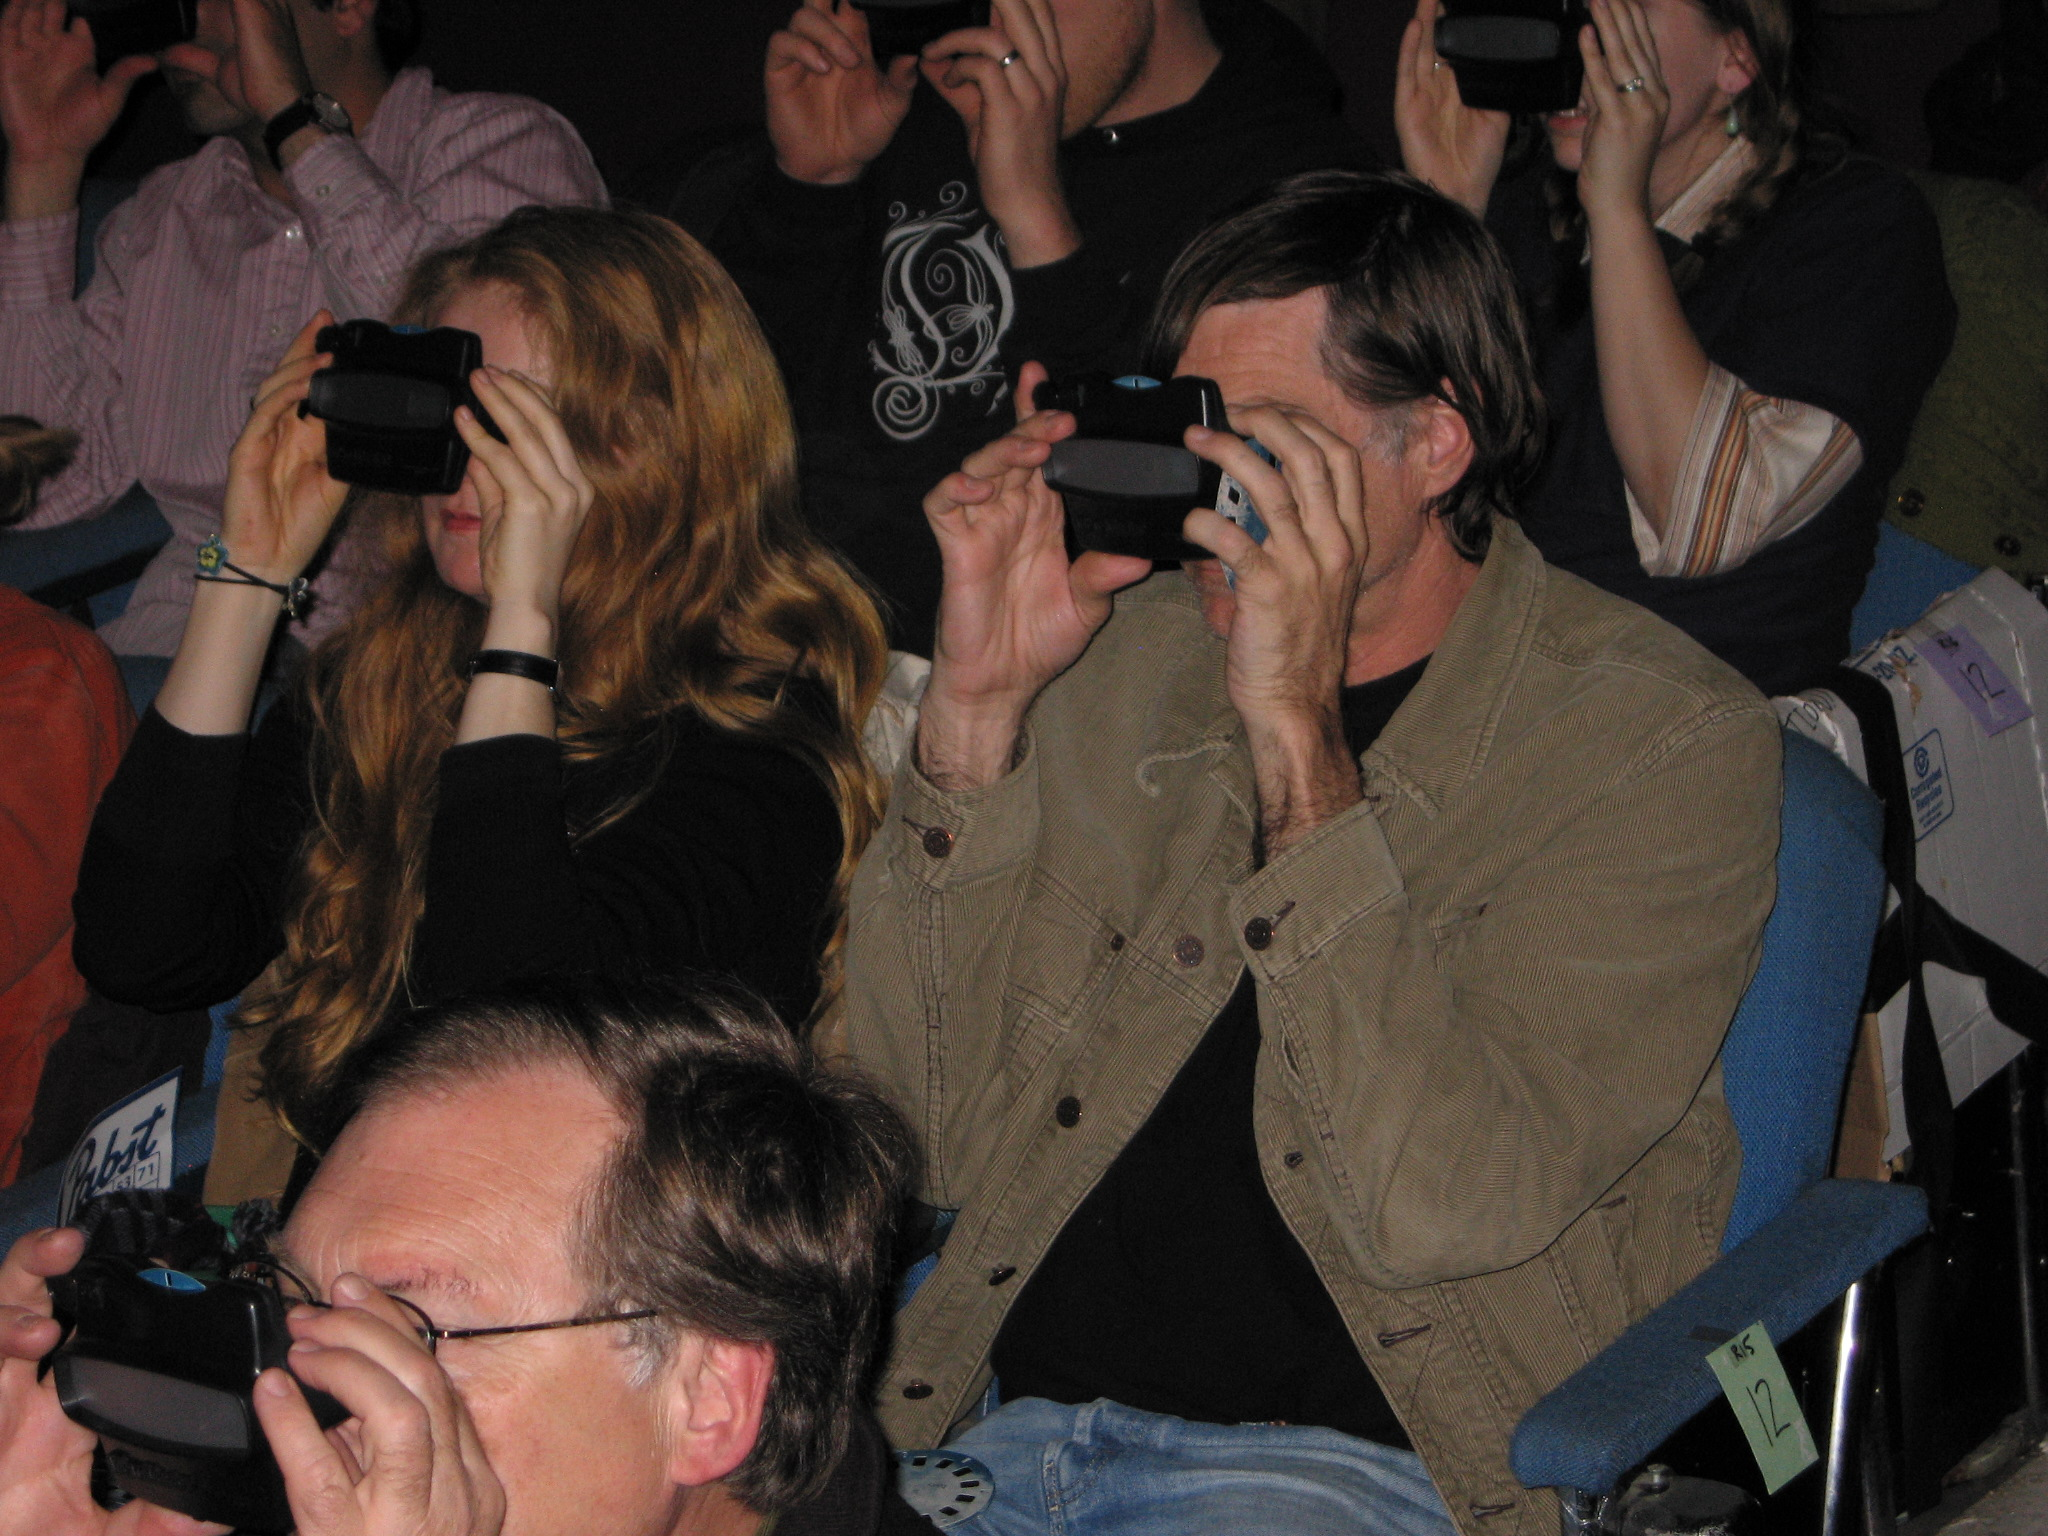 Anne McGuire and Gus Van Sant at the 2006 PDX Film Festival